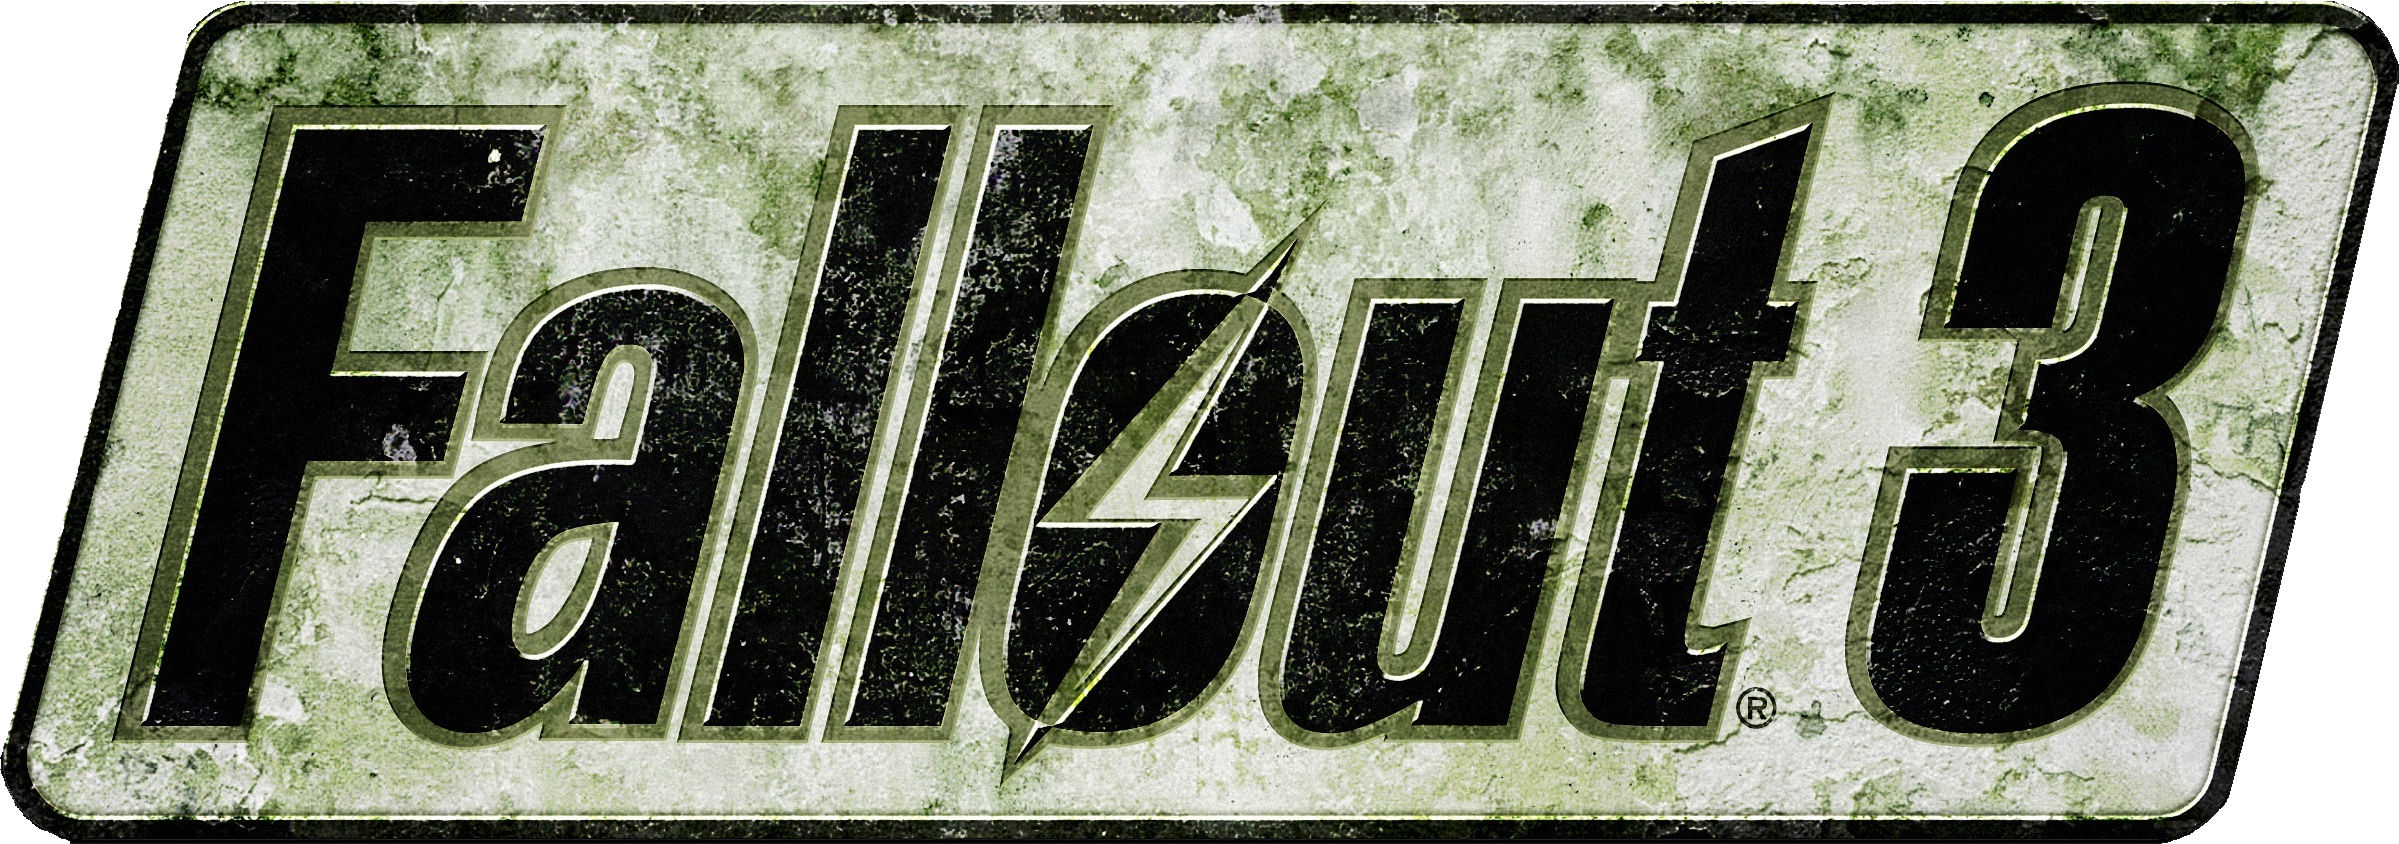 Fallout 3 logo png. Games images free download